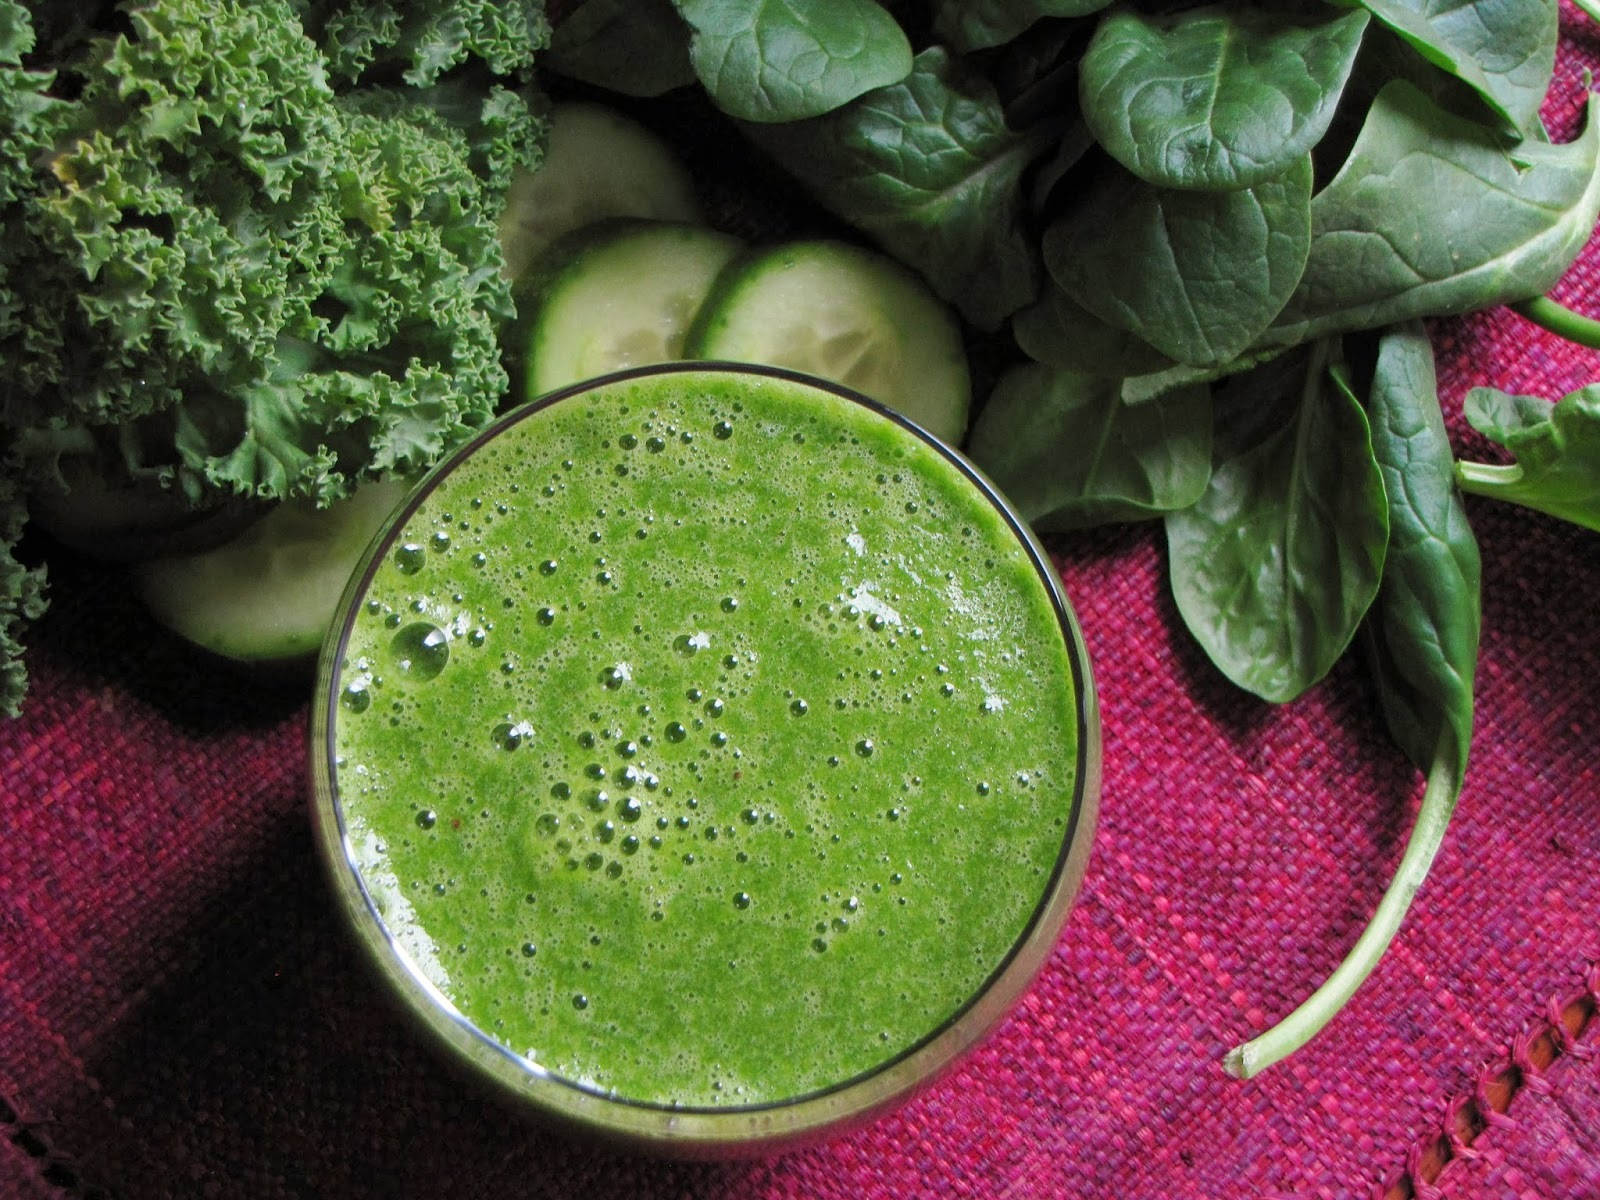 The Memory Dish - Green Smoothie inspired by California